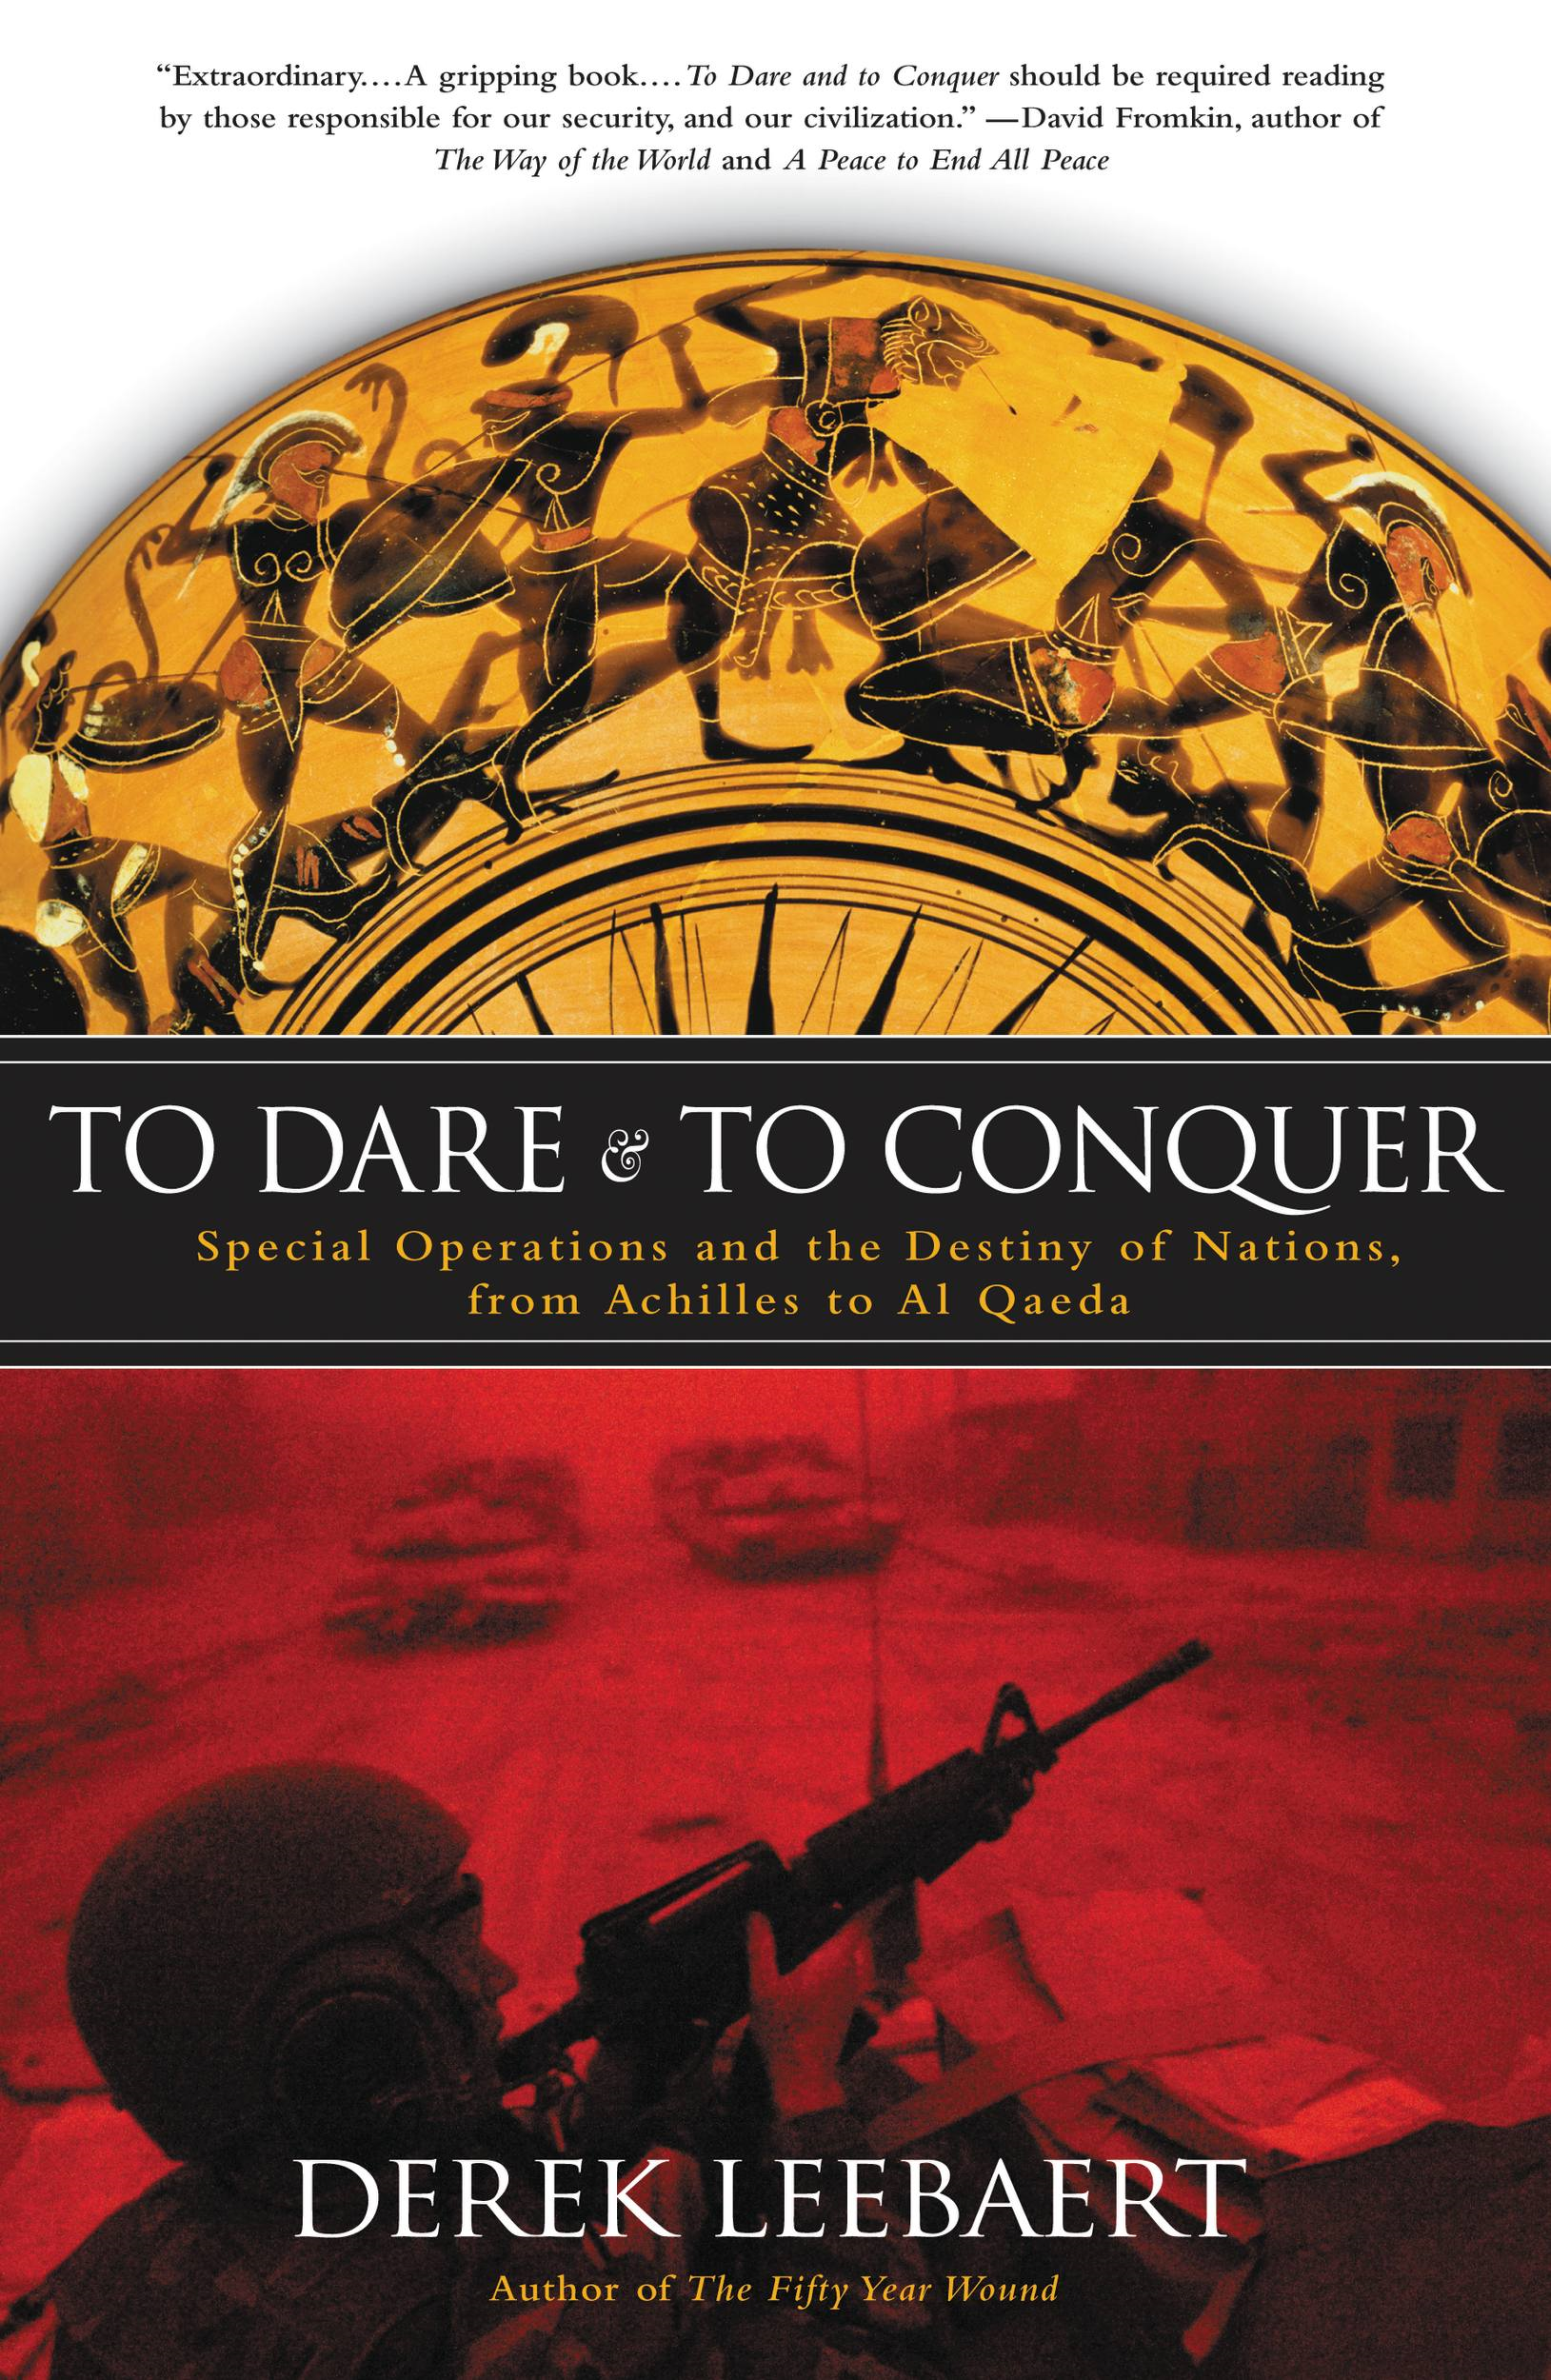 To Dare and to Conquer